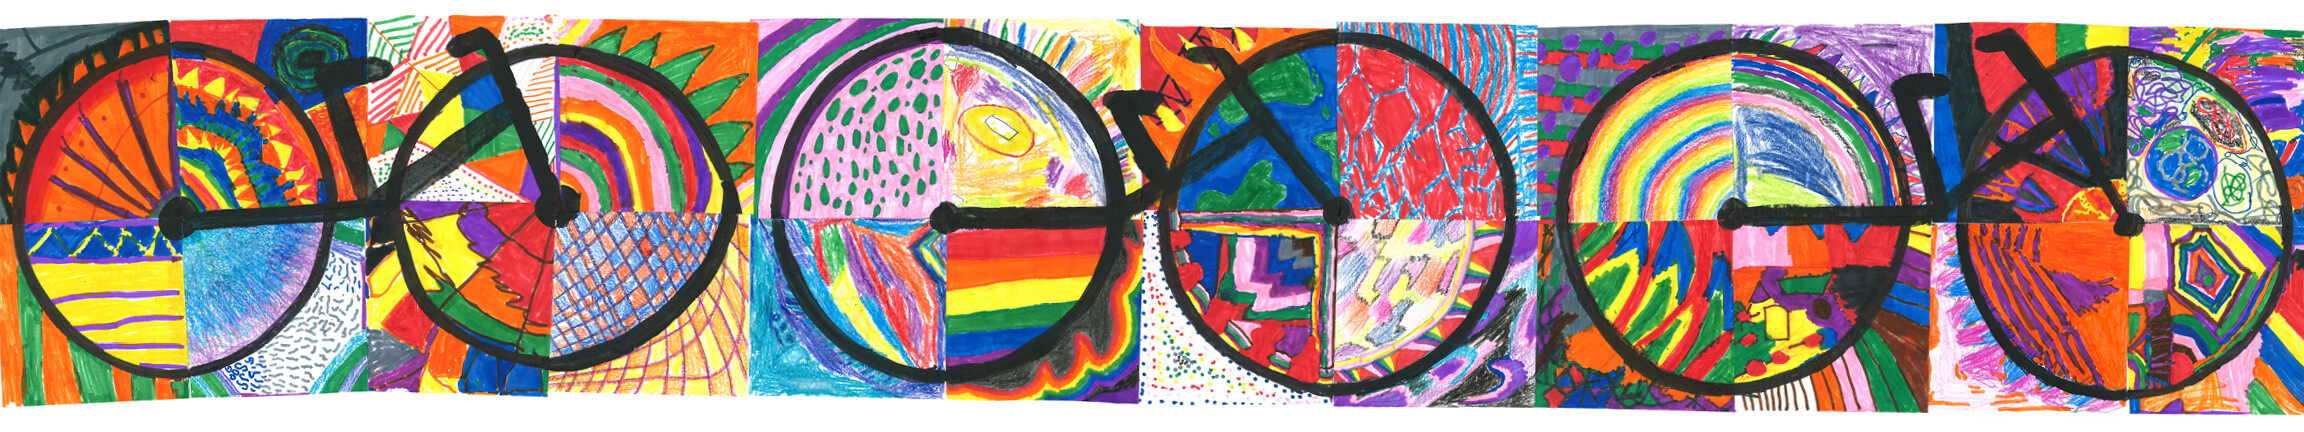 Bike-themed artwork by local elementary school students.